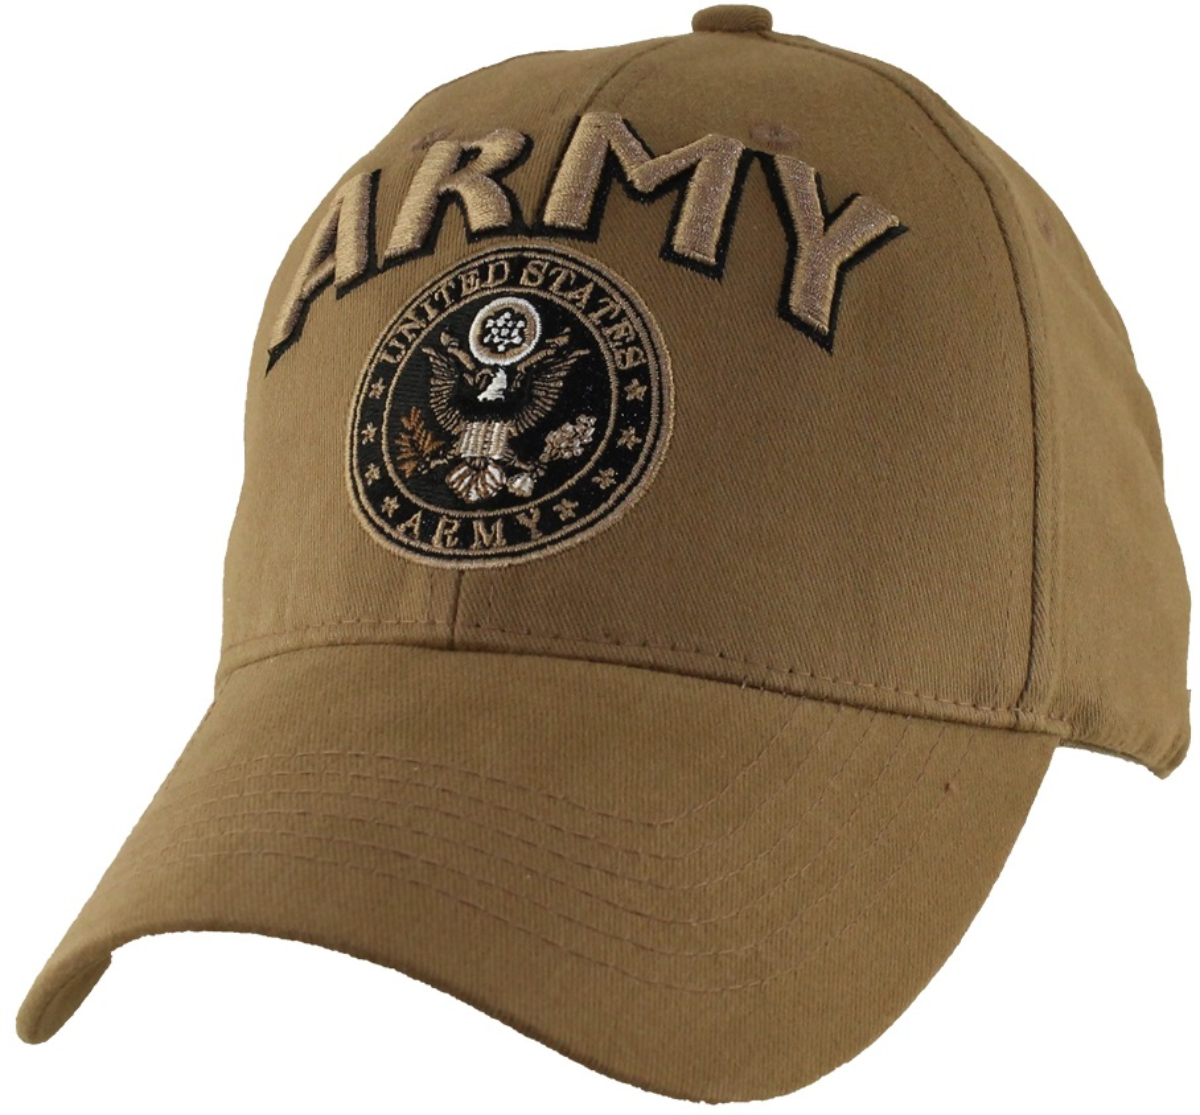 U S Army Emblem With Text Ball Cap